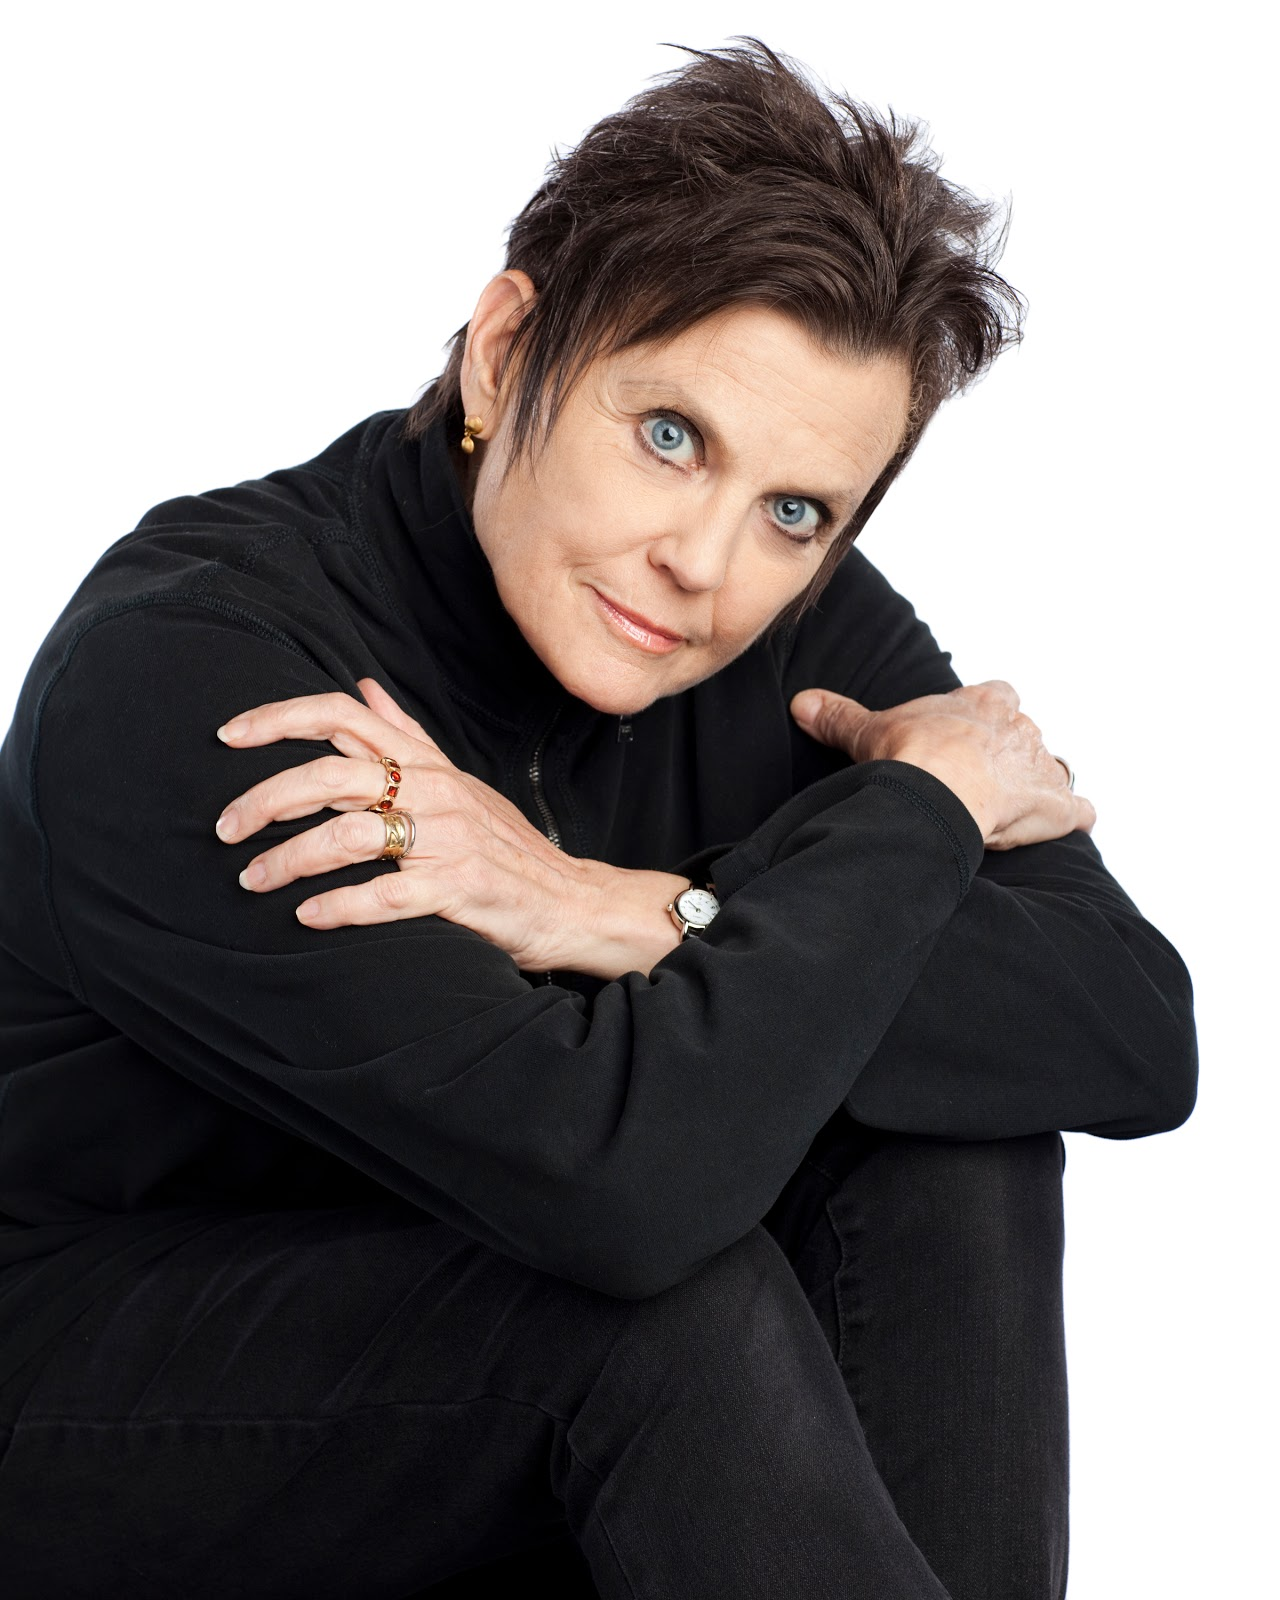 Ann Reinking nudes (91 images) Feet, 2015, cleavage